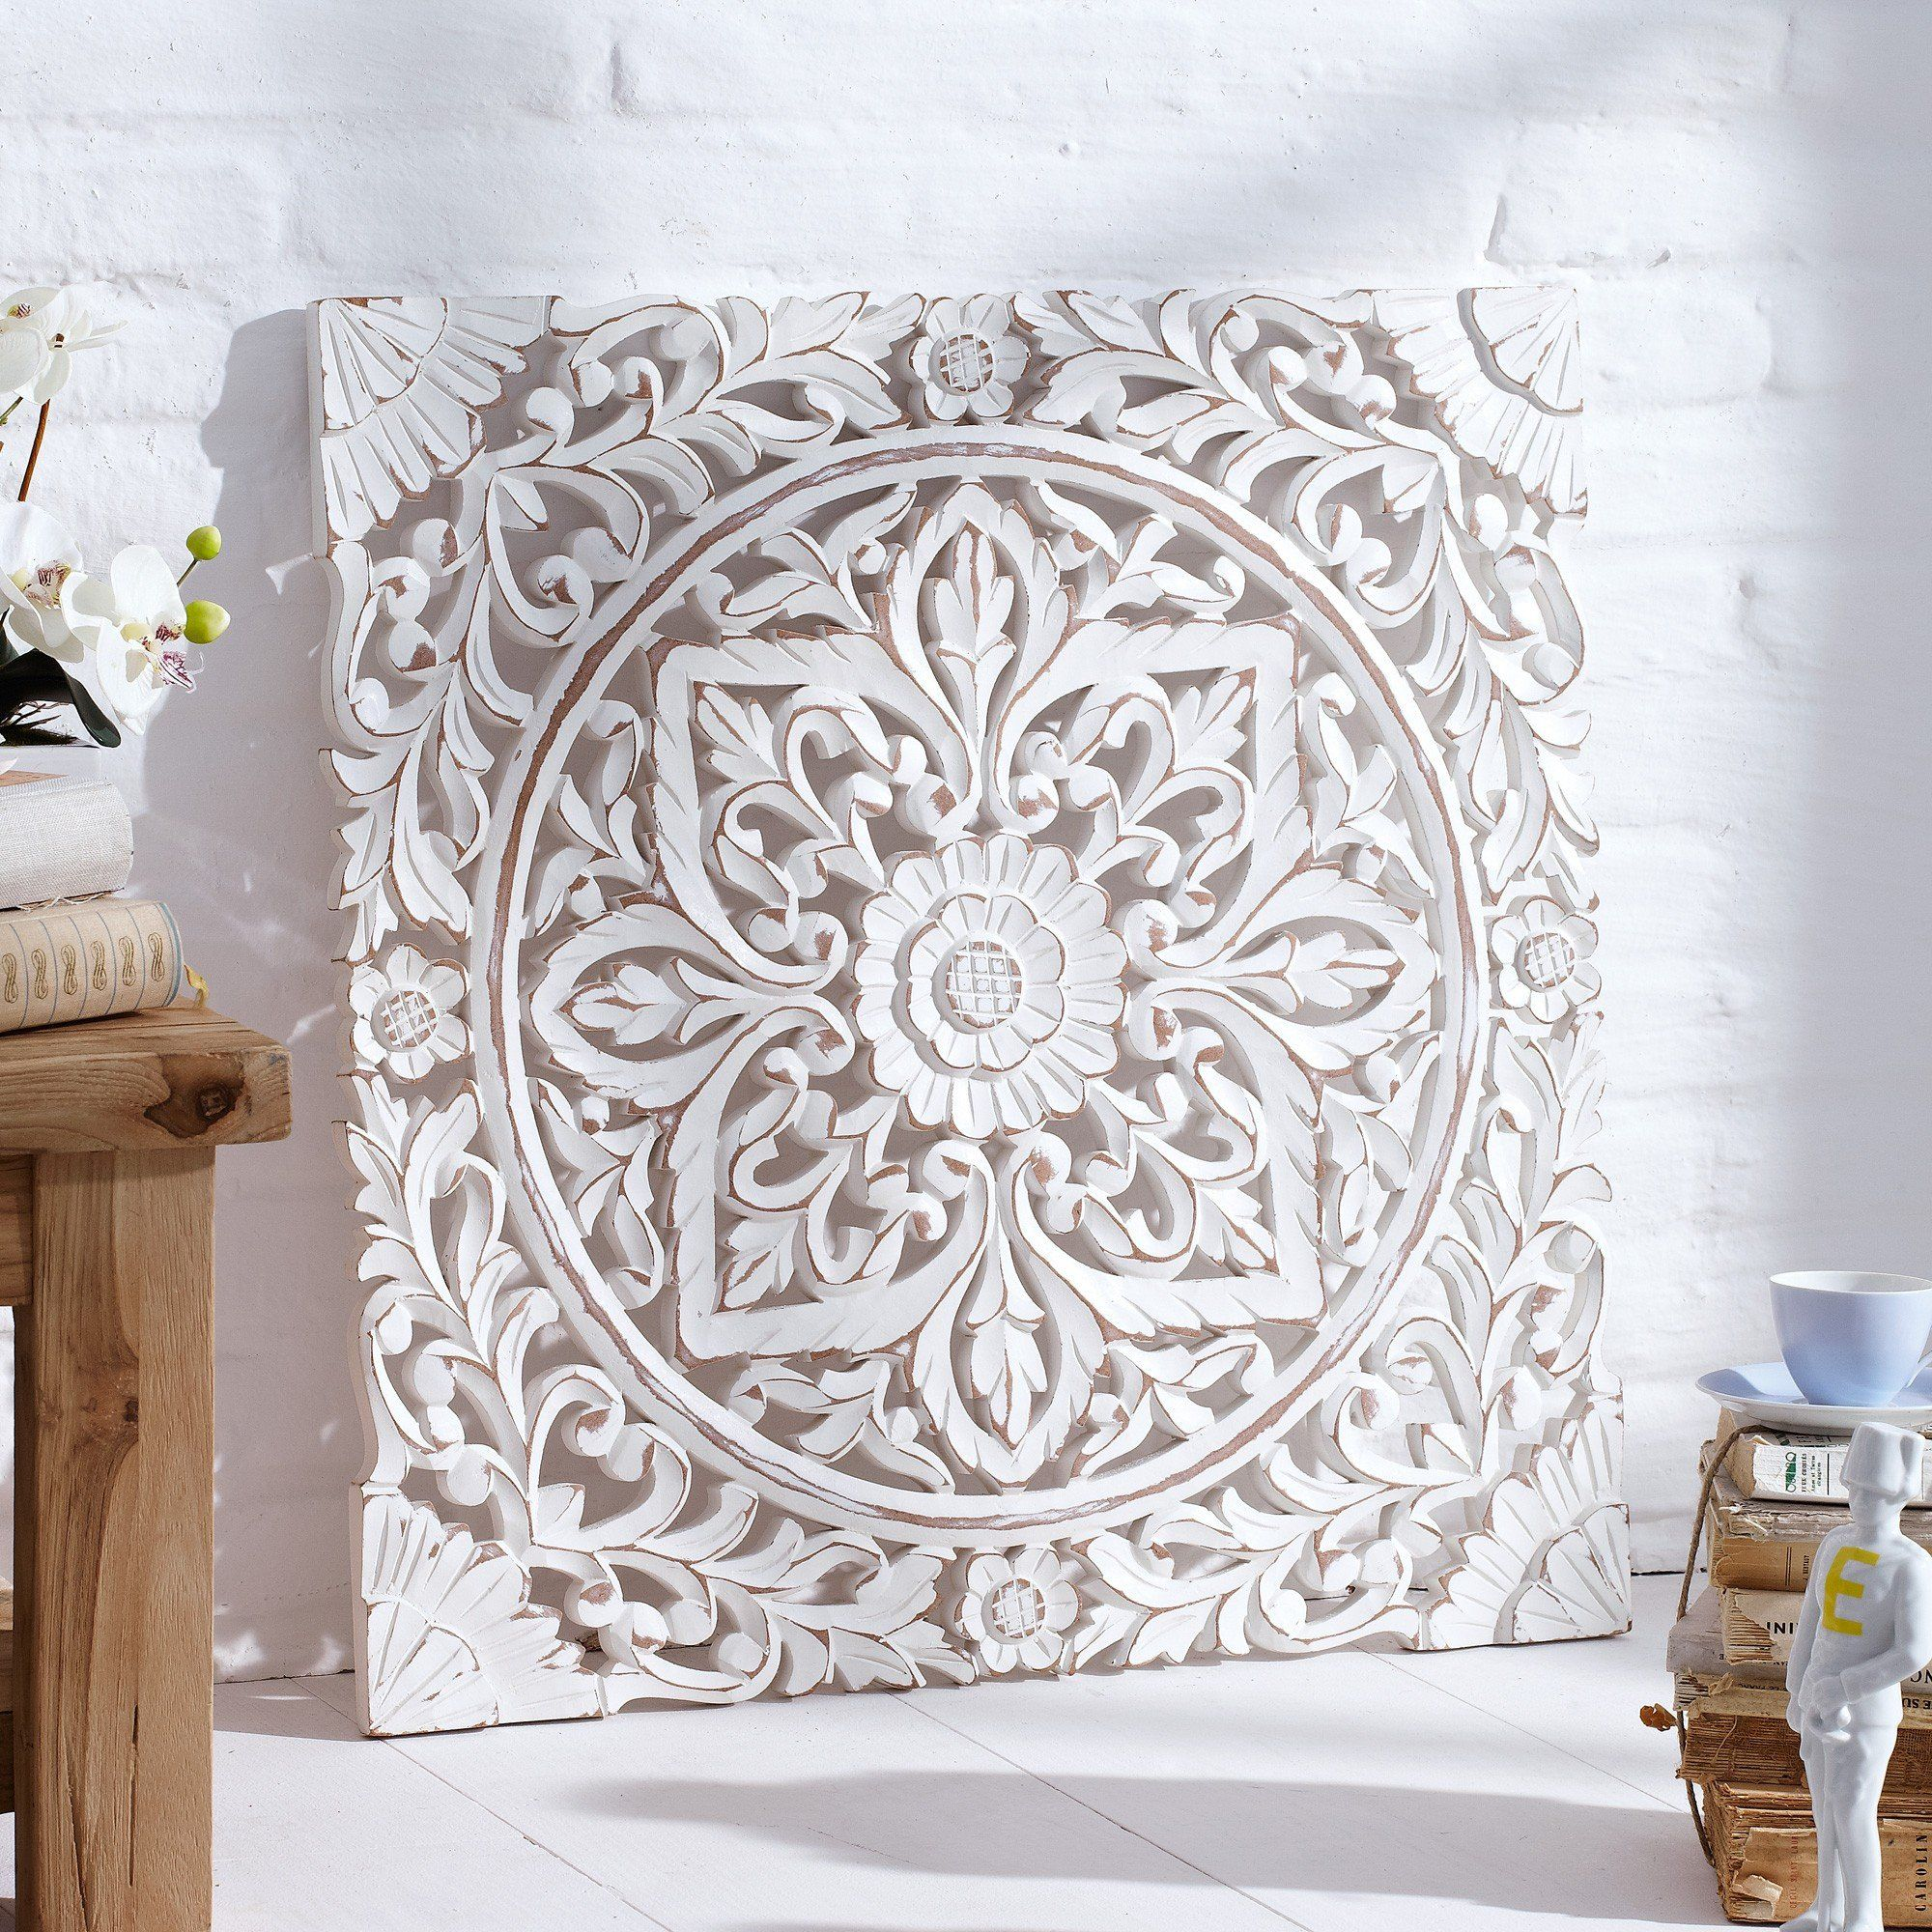 wall carved dia decorative teal scroll arts white info wood mdf decor india simpsonovi tricate panel